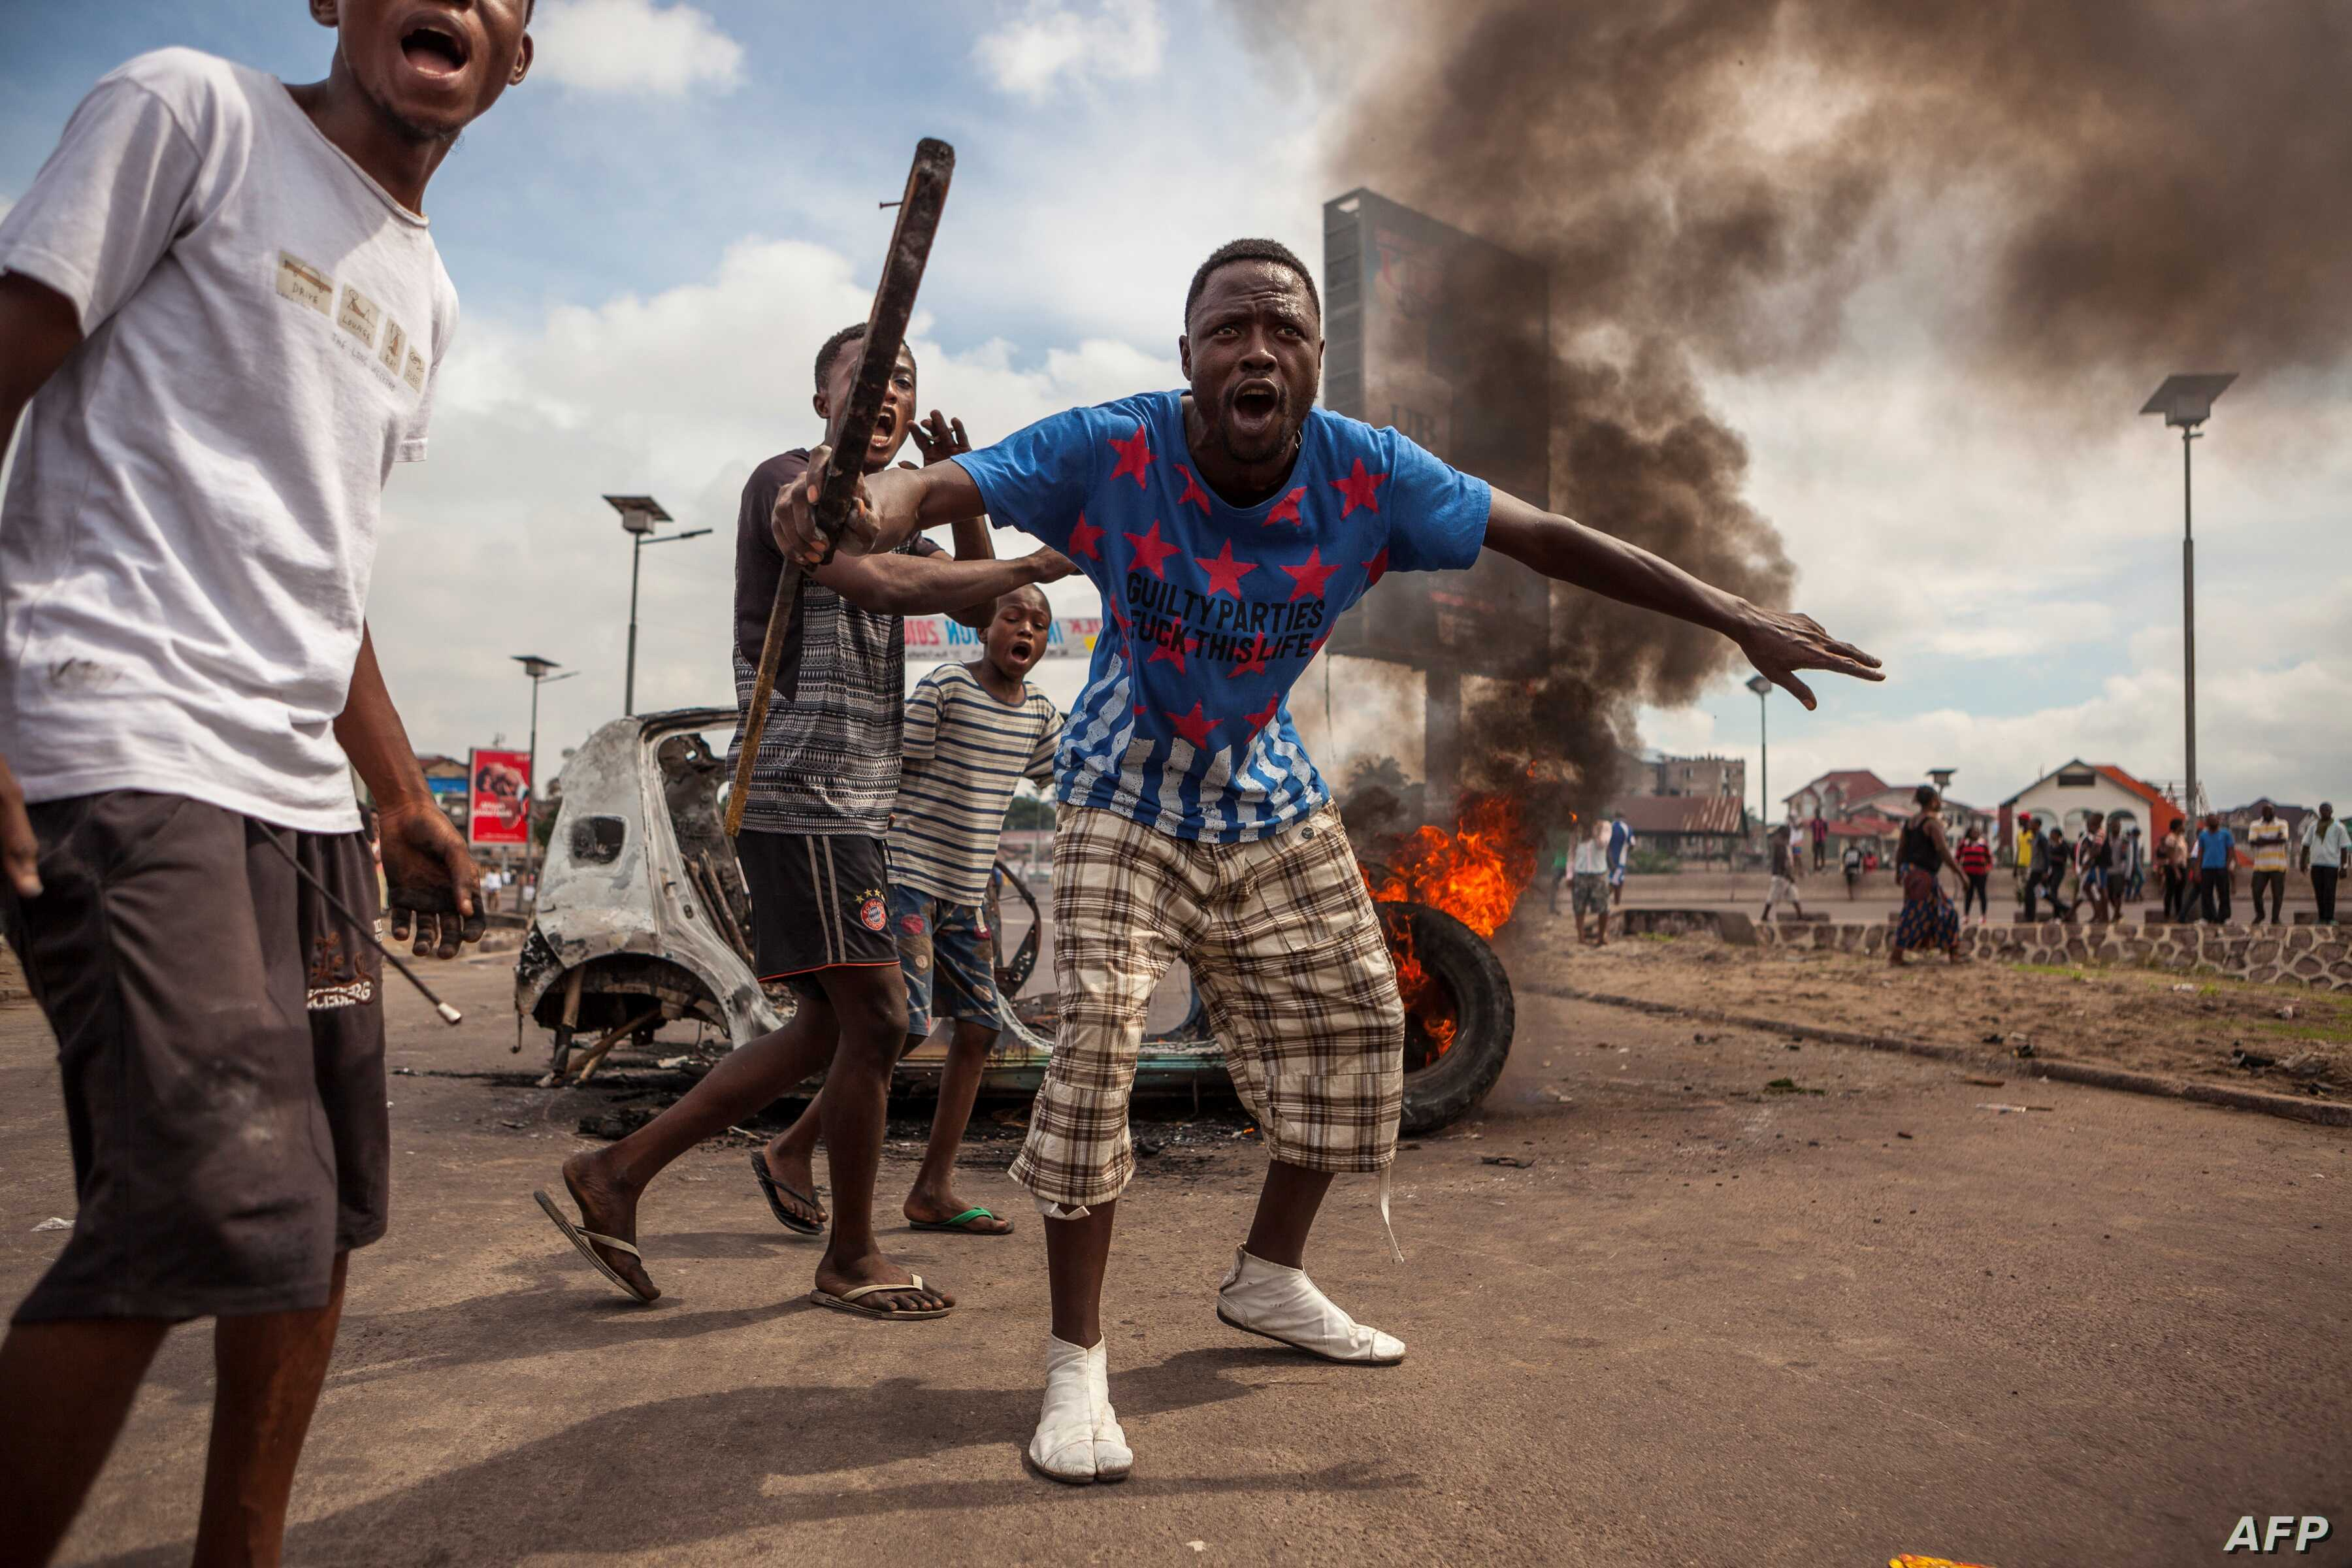 Demonstrators gather in front of a burning car during an opposition rally in Kinshasa, DRC, Sept. 19, 2016.